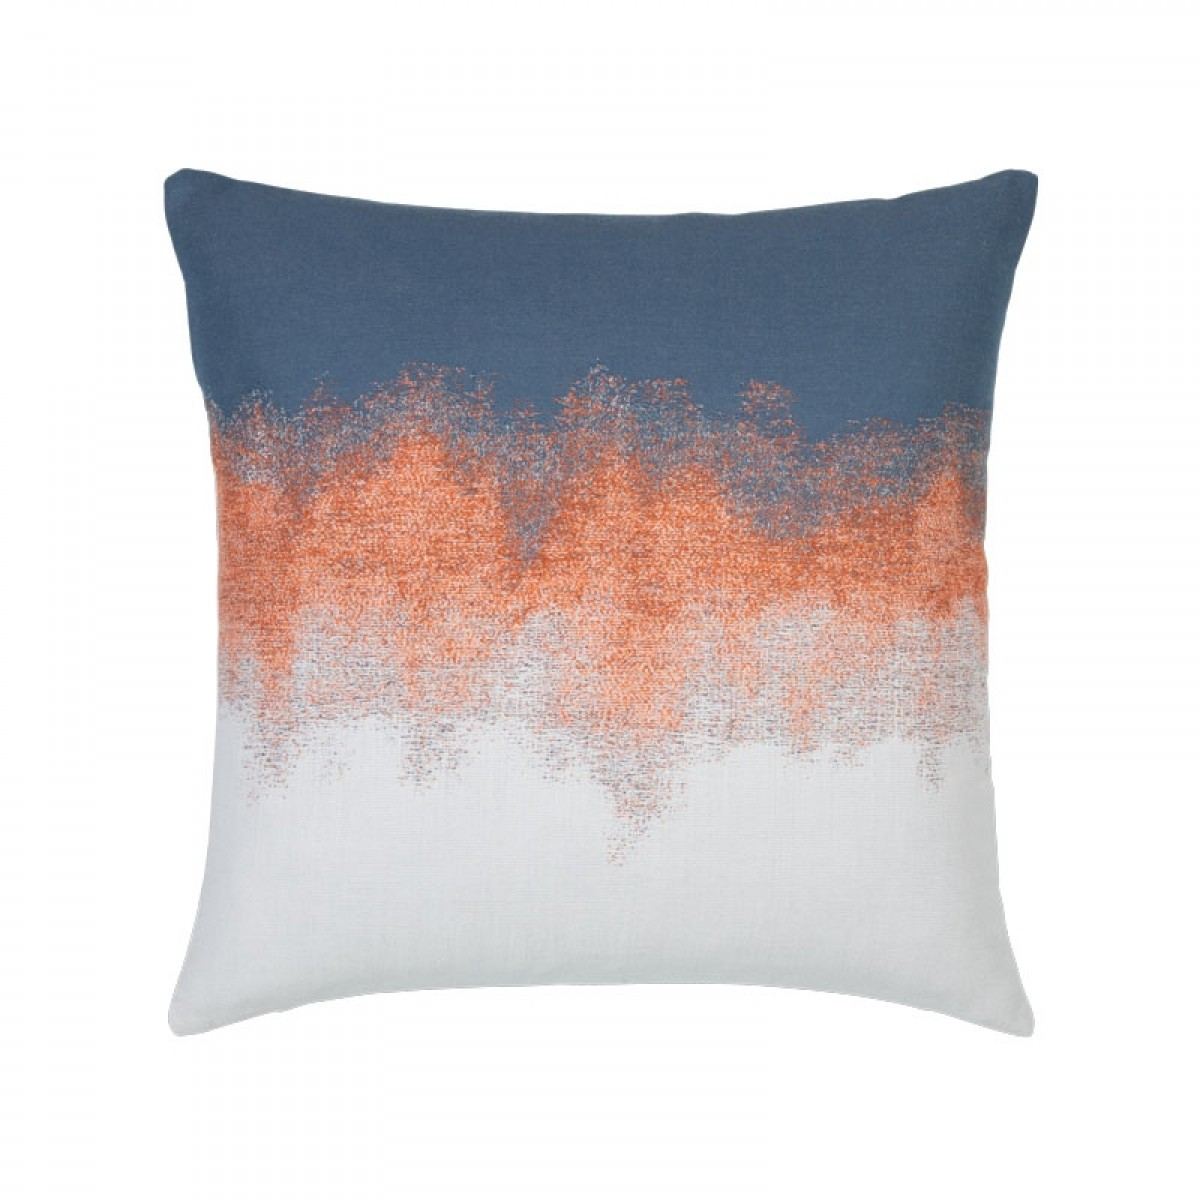 Artful Sunset - This item will ship by 6/18